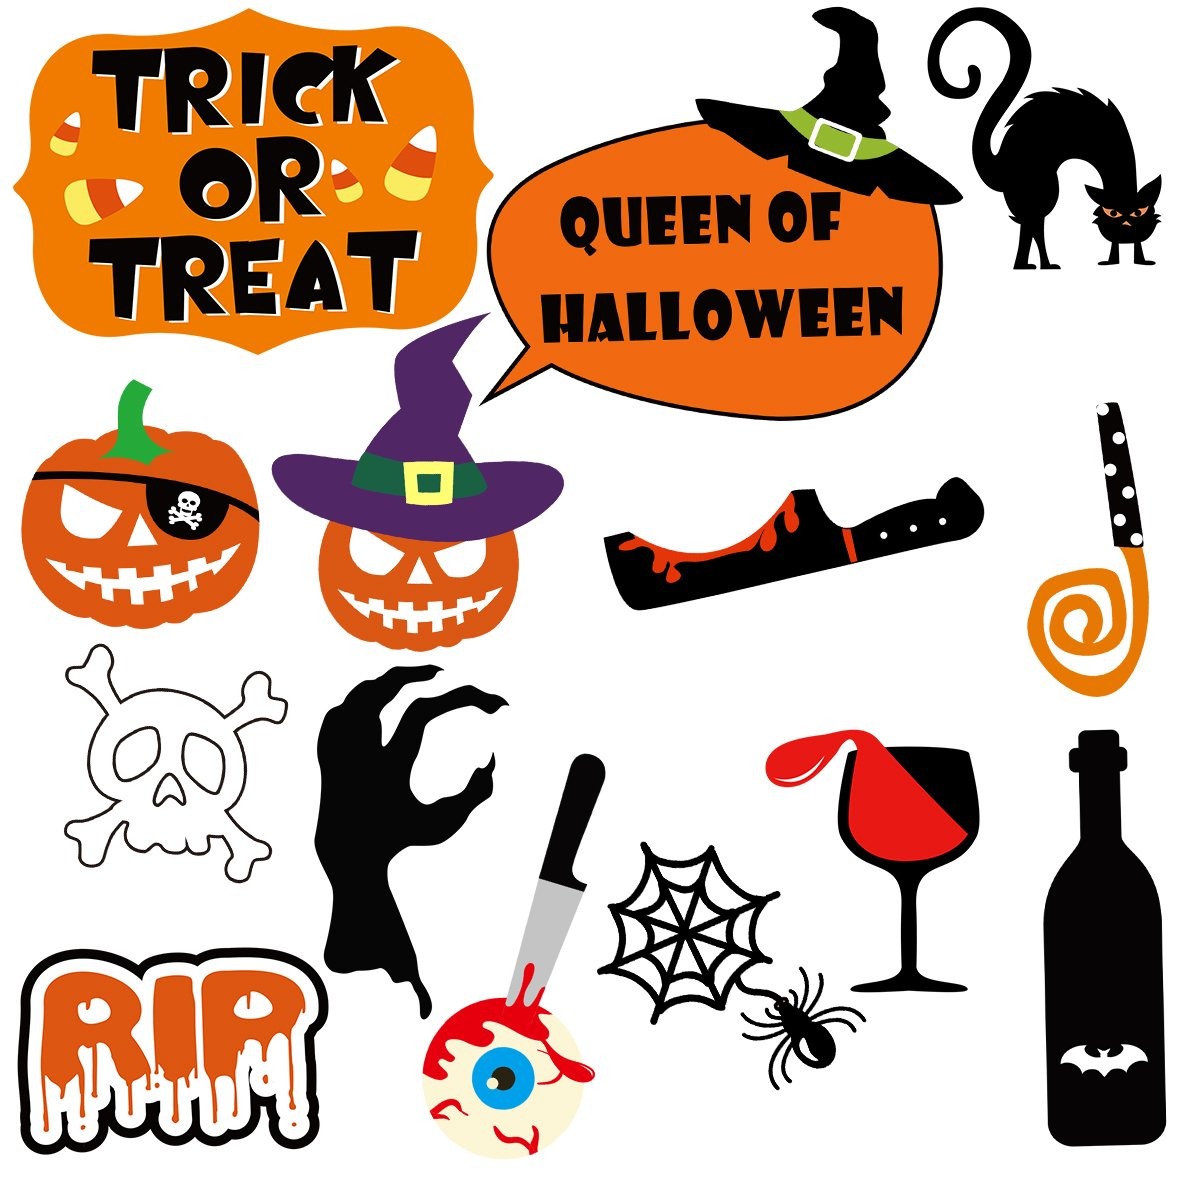 PRETYZOOM 47 Pieces Halloween Party Photo Booth Props Kit Fancy Party Decor Halloween SupplyPose Sign Kit for Party Decoration by PRETYZOOM (Image #2)